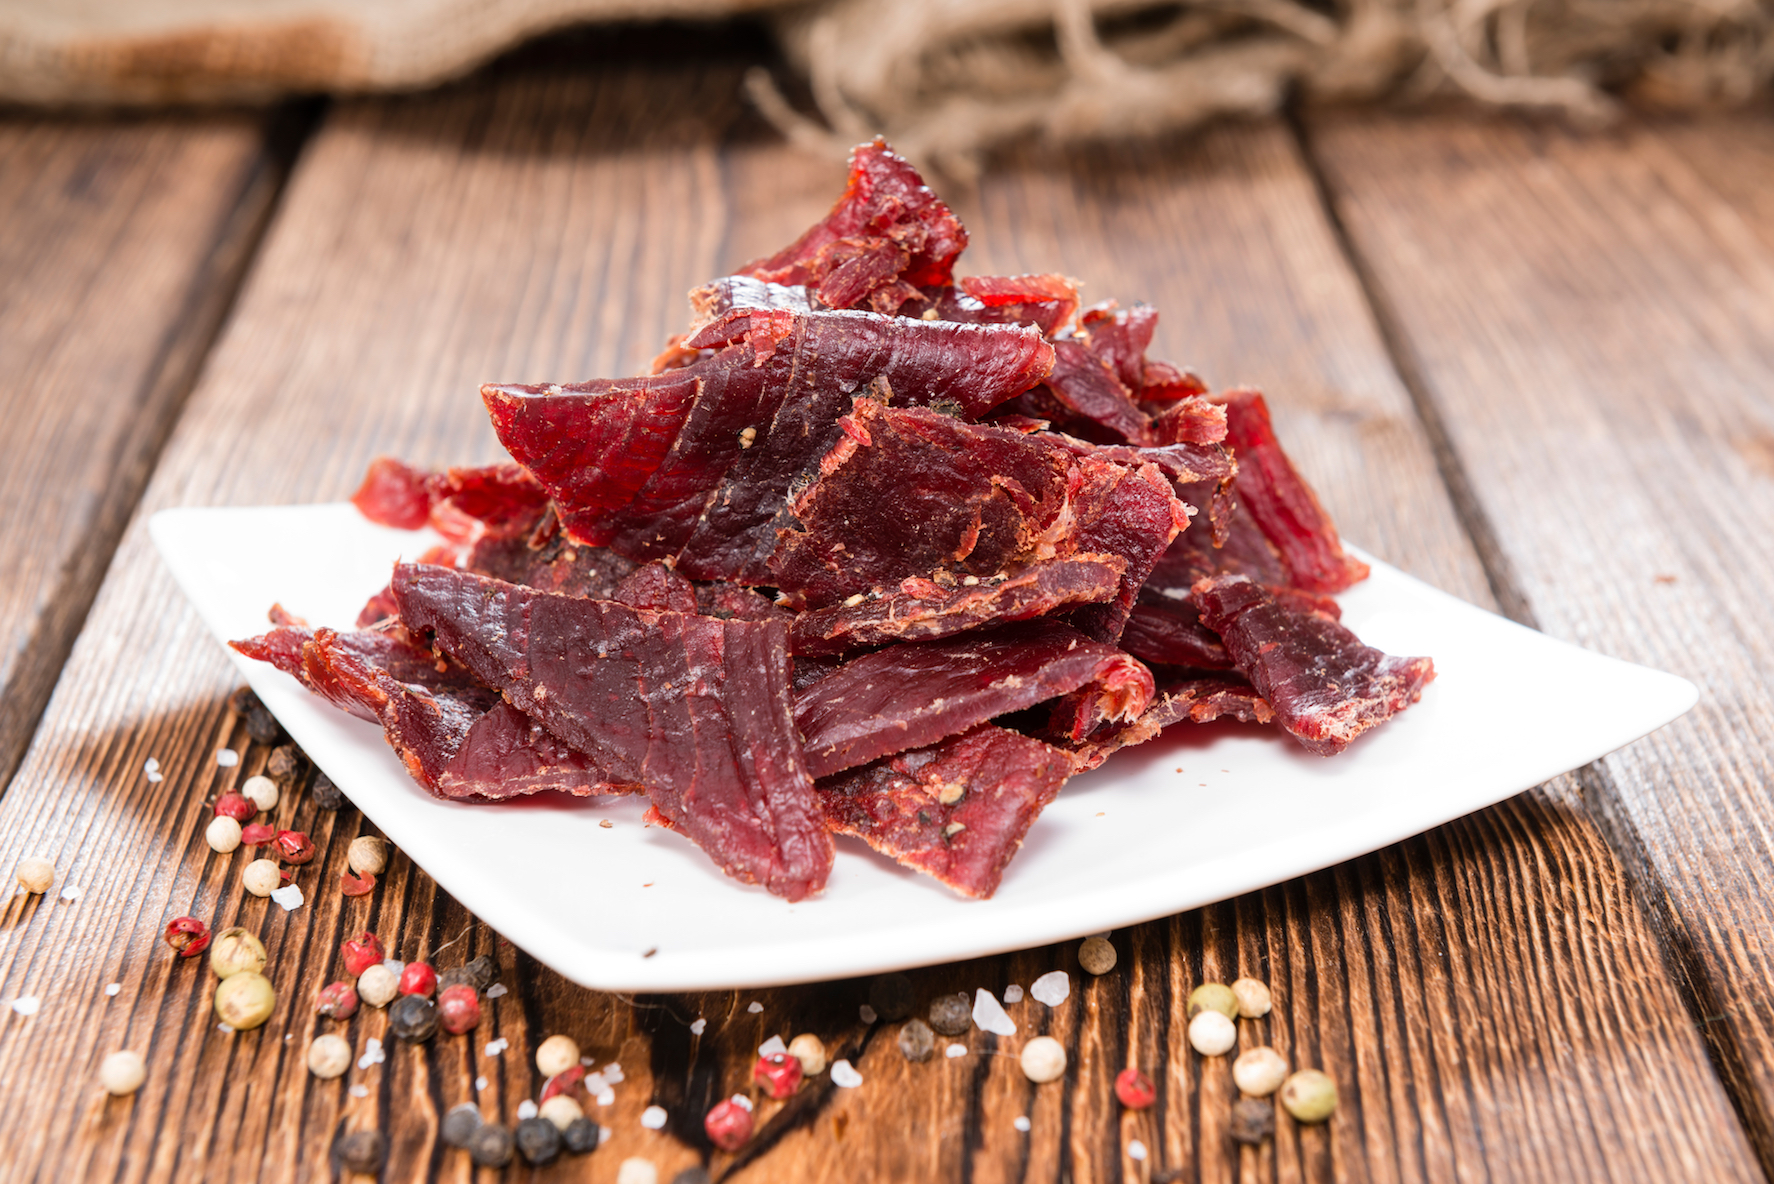 Nitrates used to cure processed meats like beef jerky may cause mania even in people without psychological disorders.